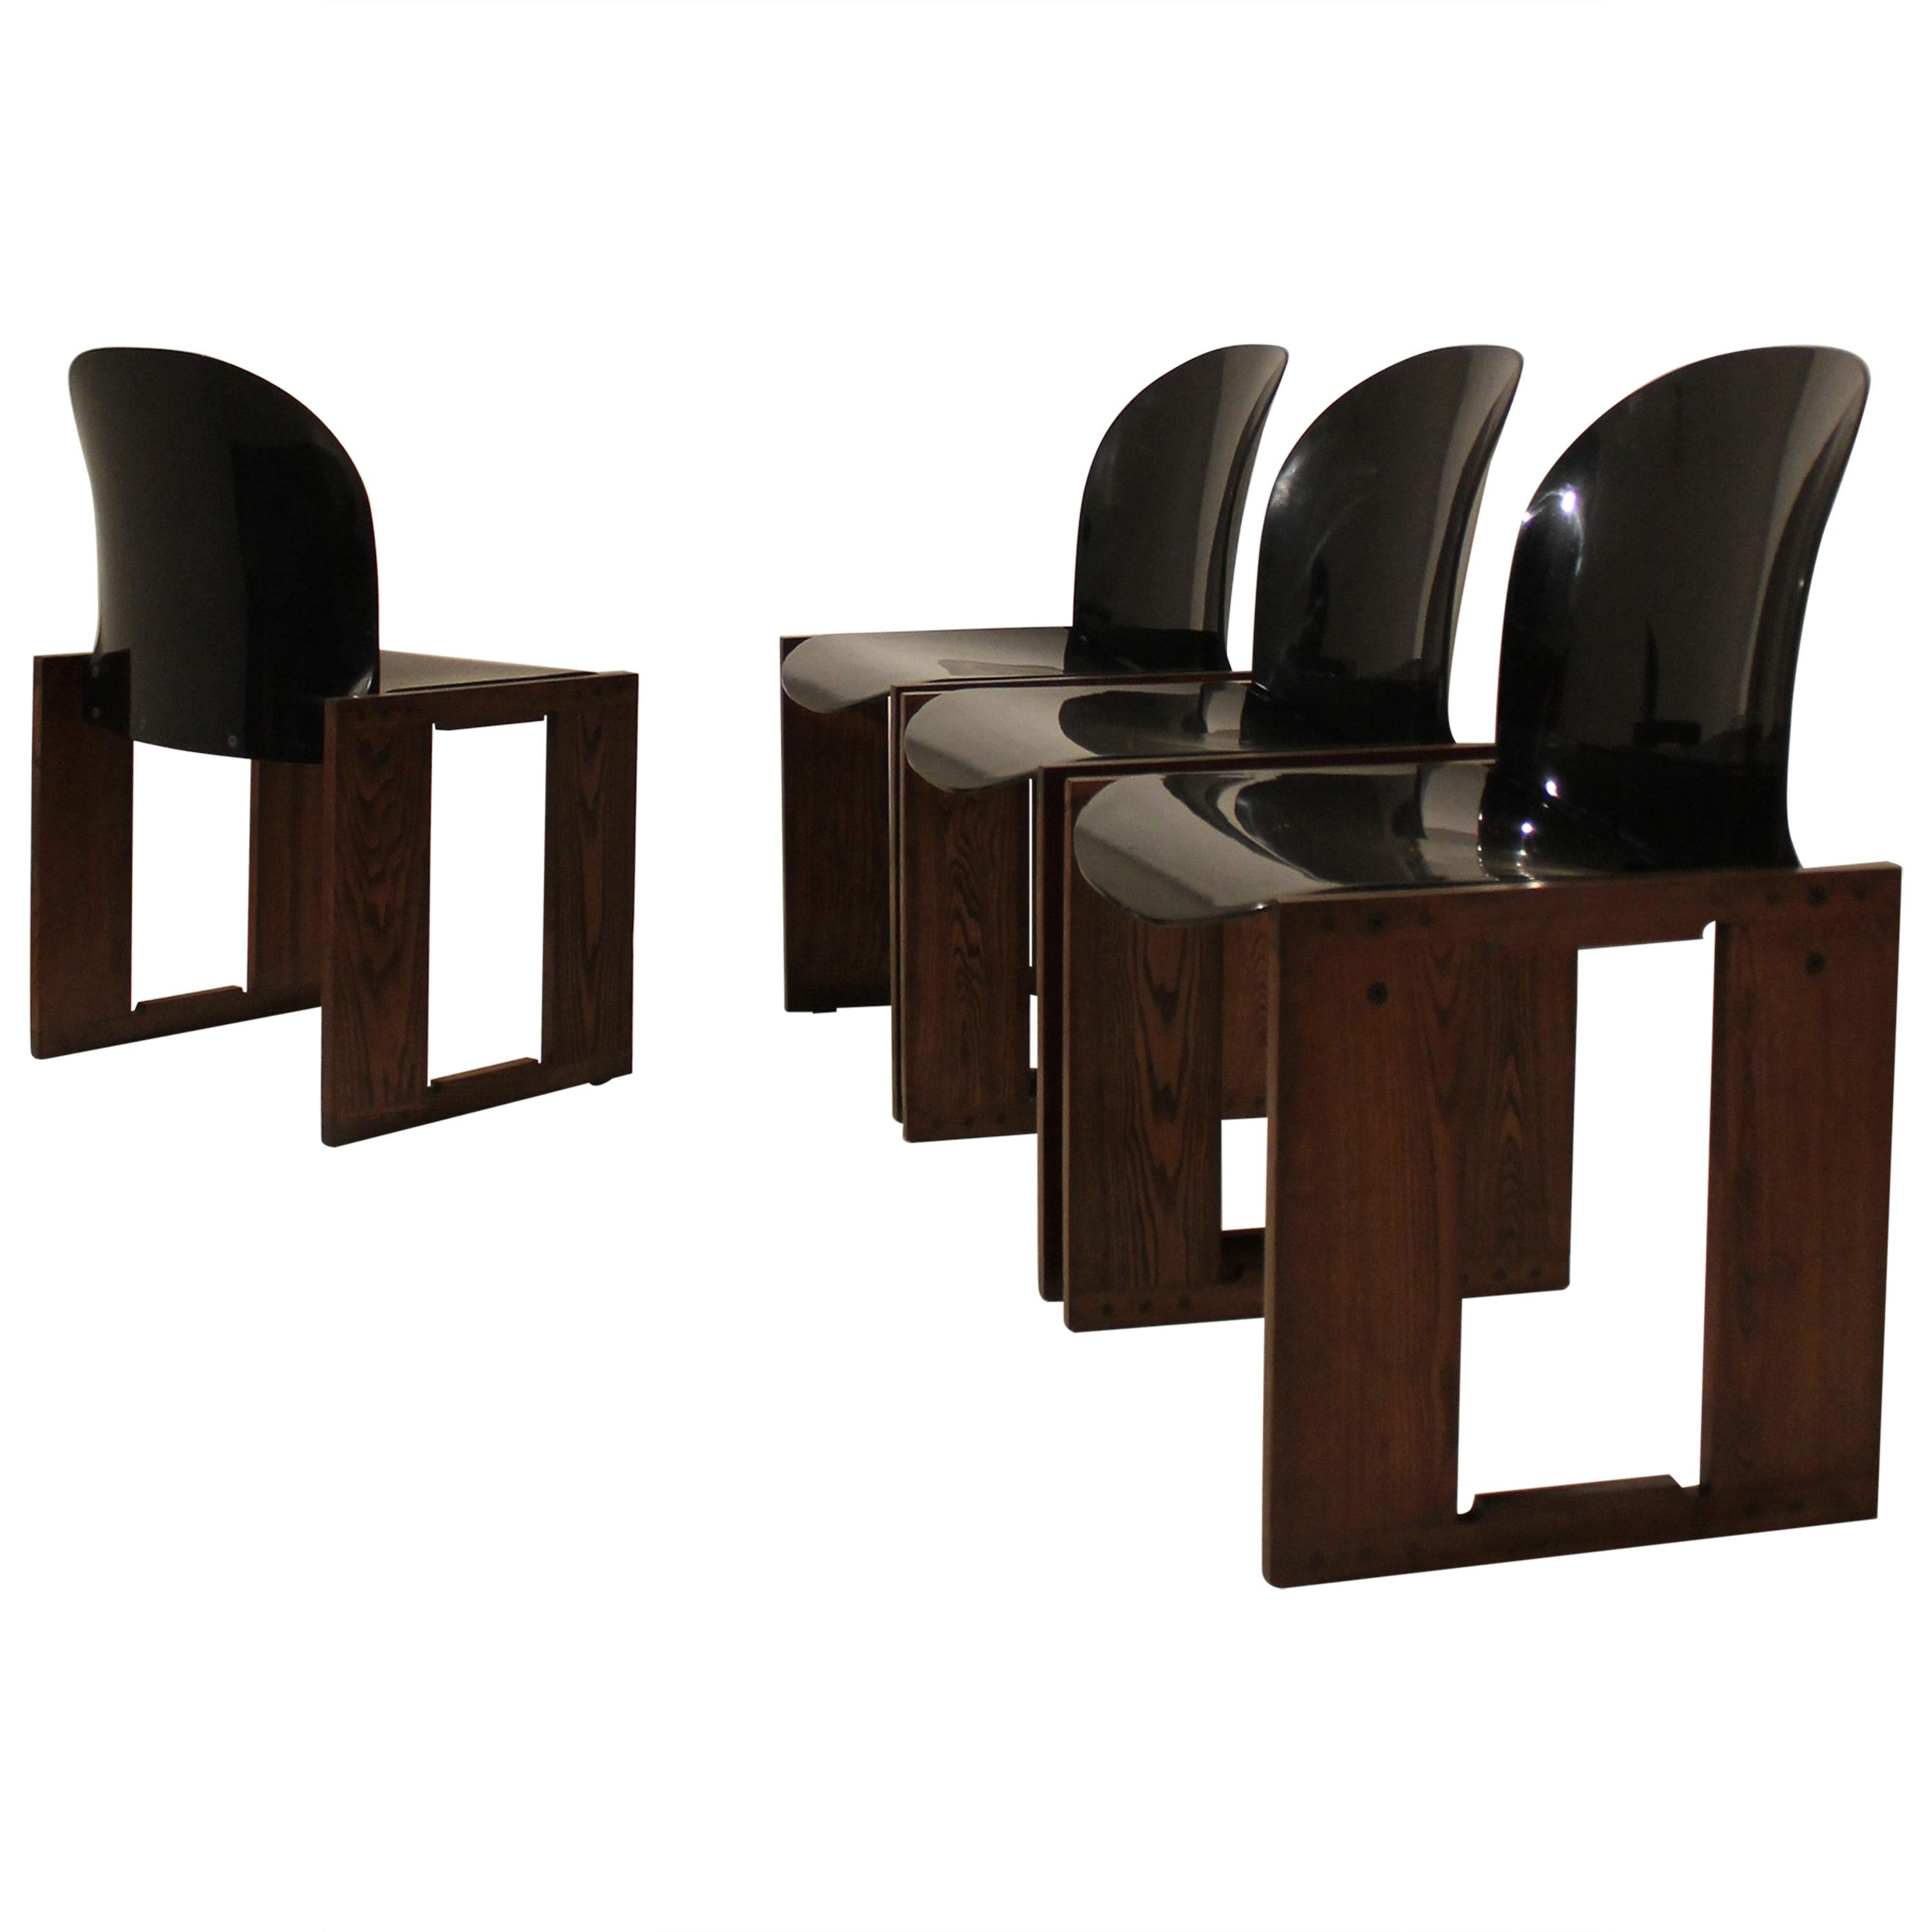 "Set of Four Midcentury Tobia Scarpa ""Dialogo"" Chair for B&B Italia, 1970s"